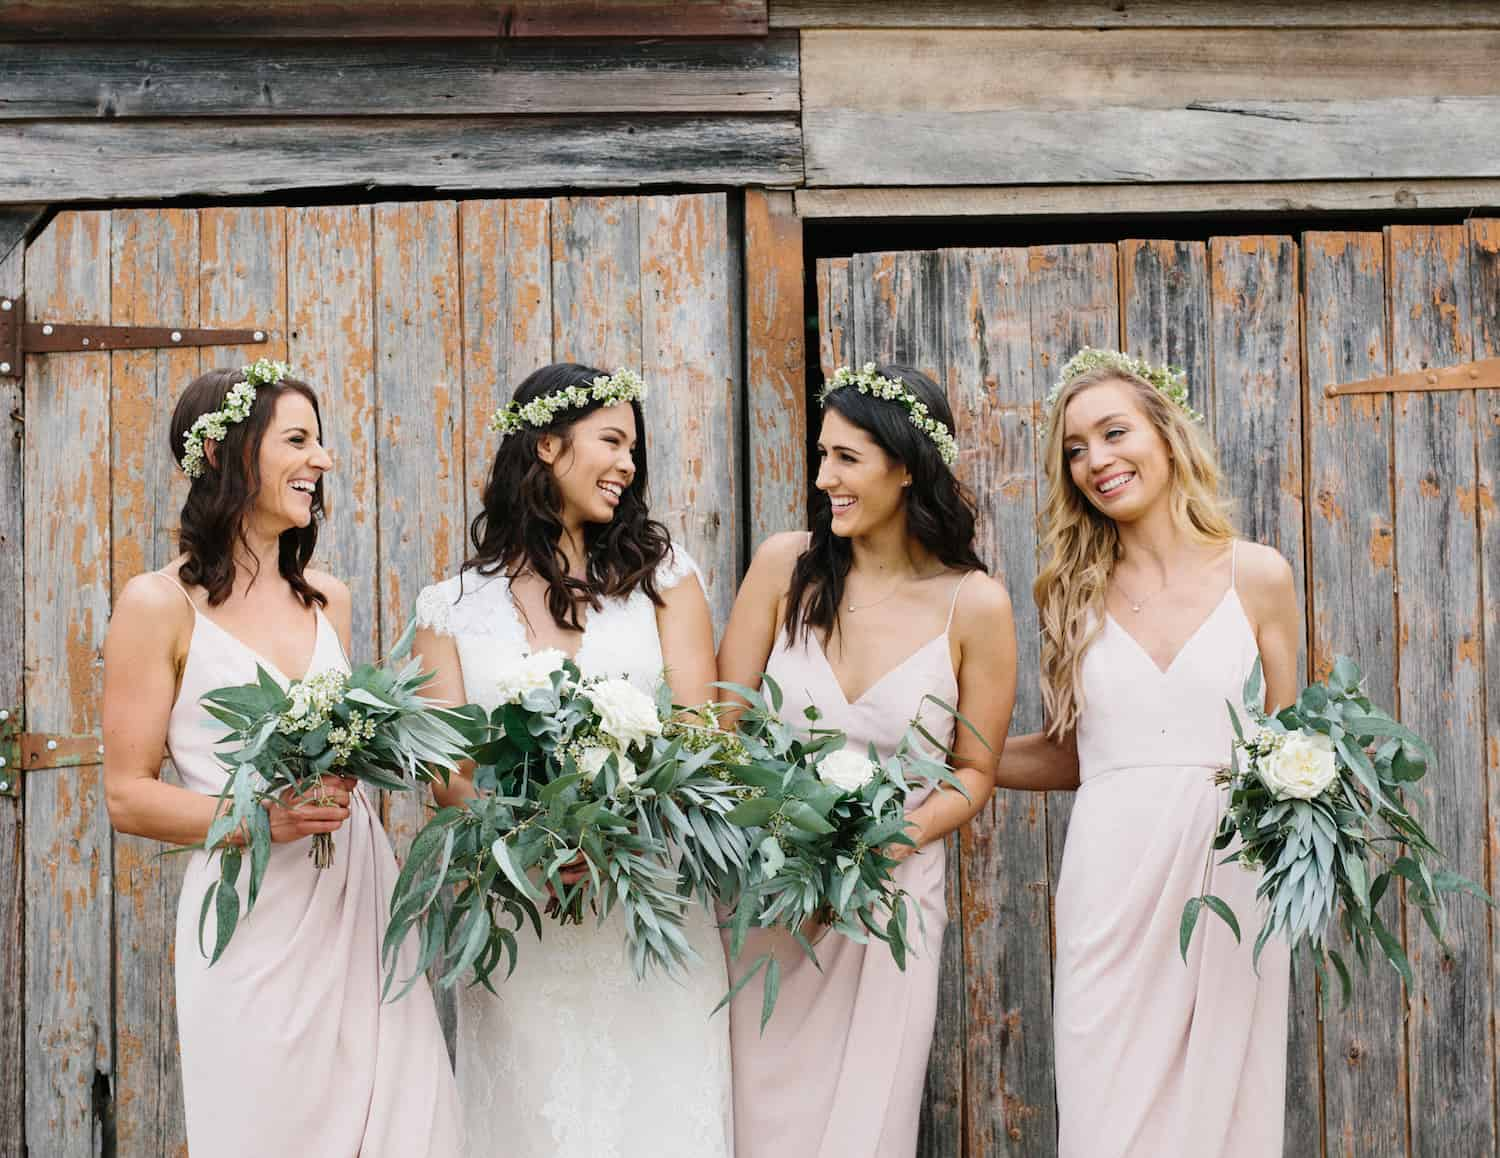 Gorgeous Rustic Country Wedding Malsbury VIC Best Wedding Photographer Melbourne Madeleine Chiller Photography 11